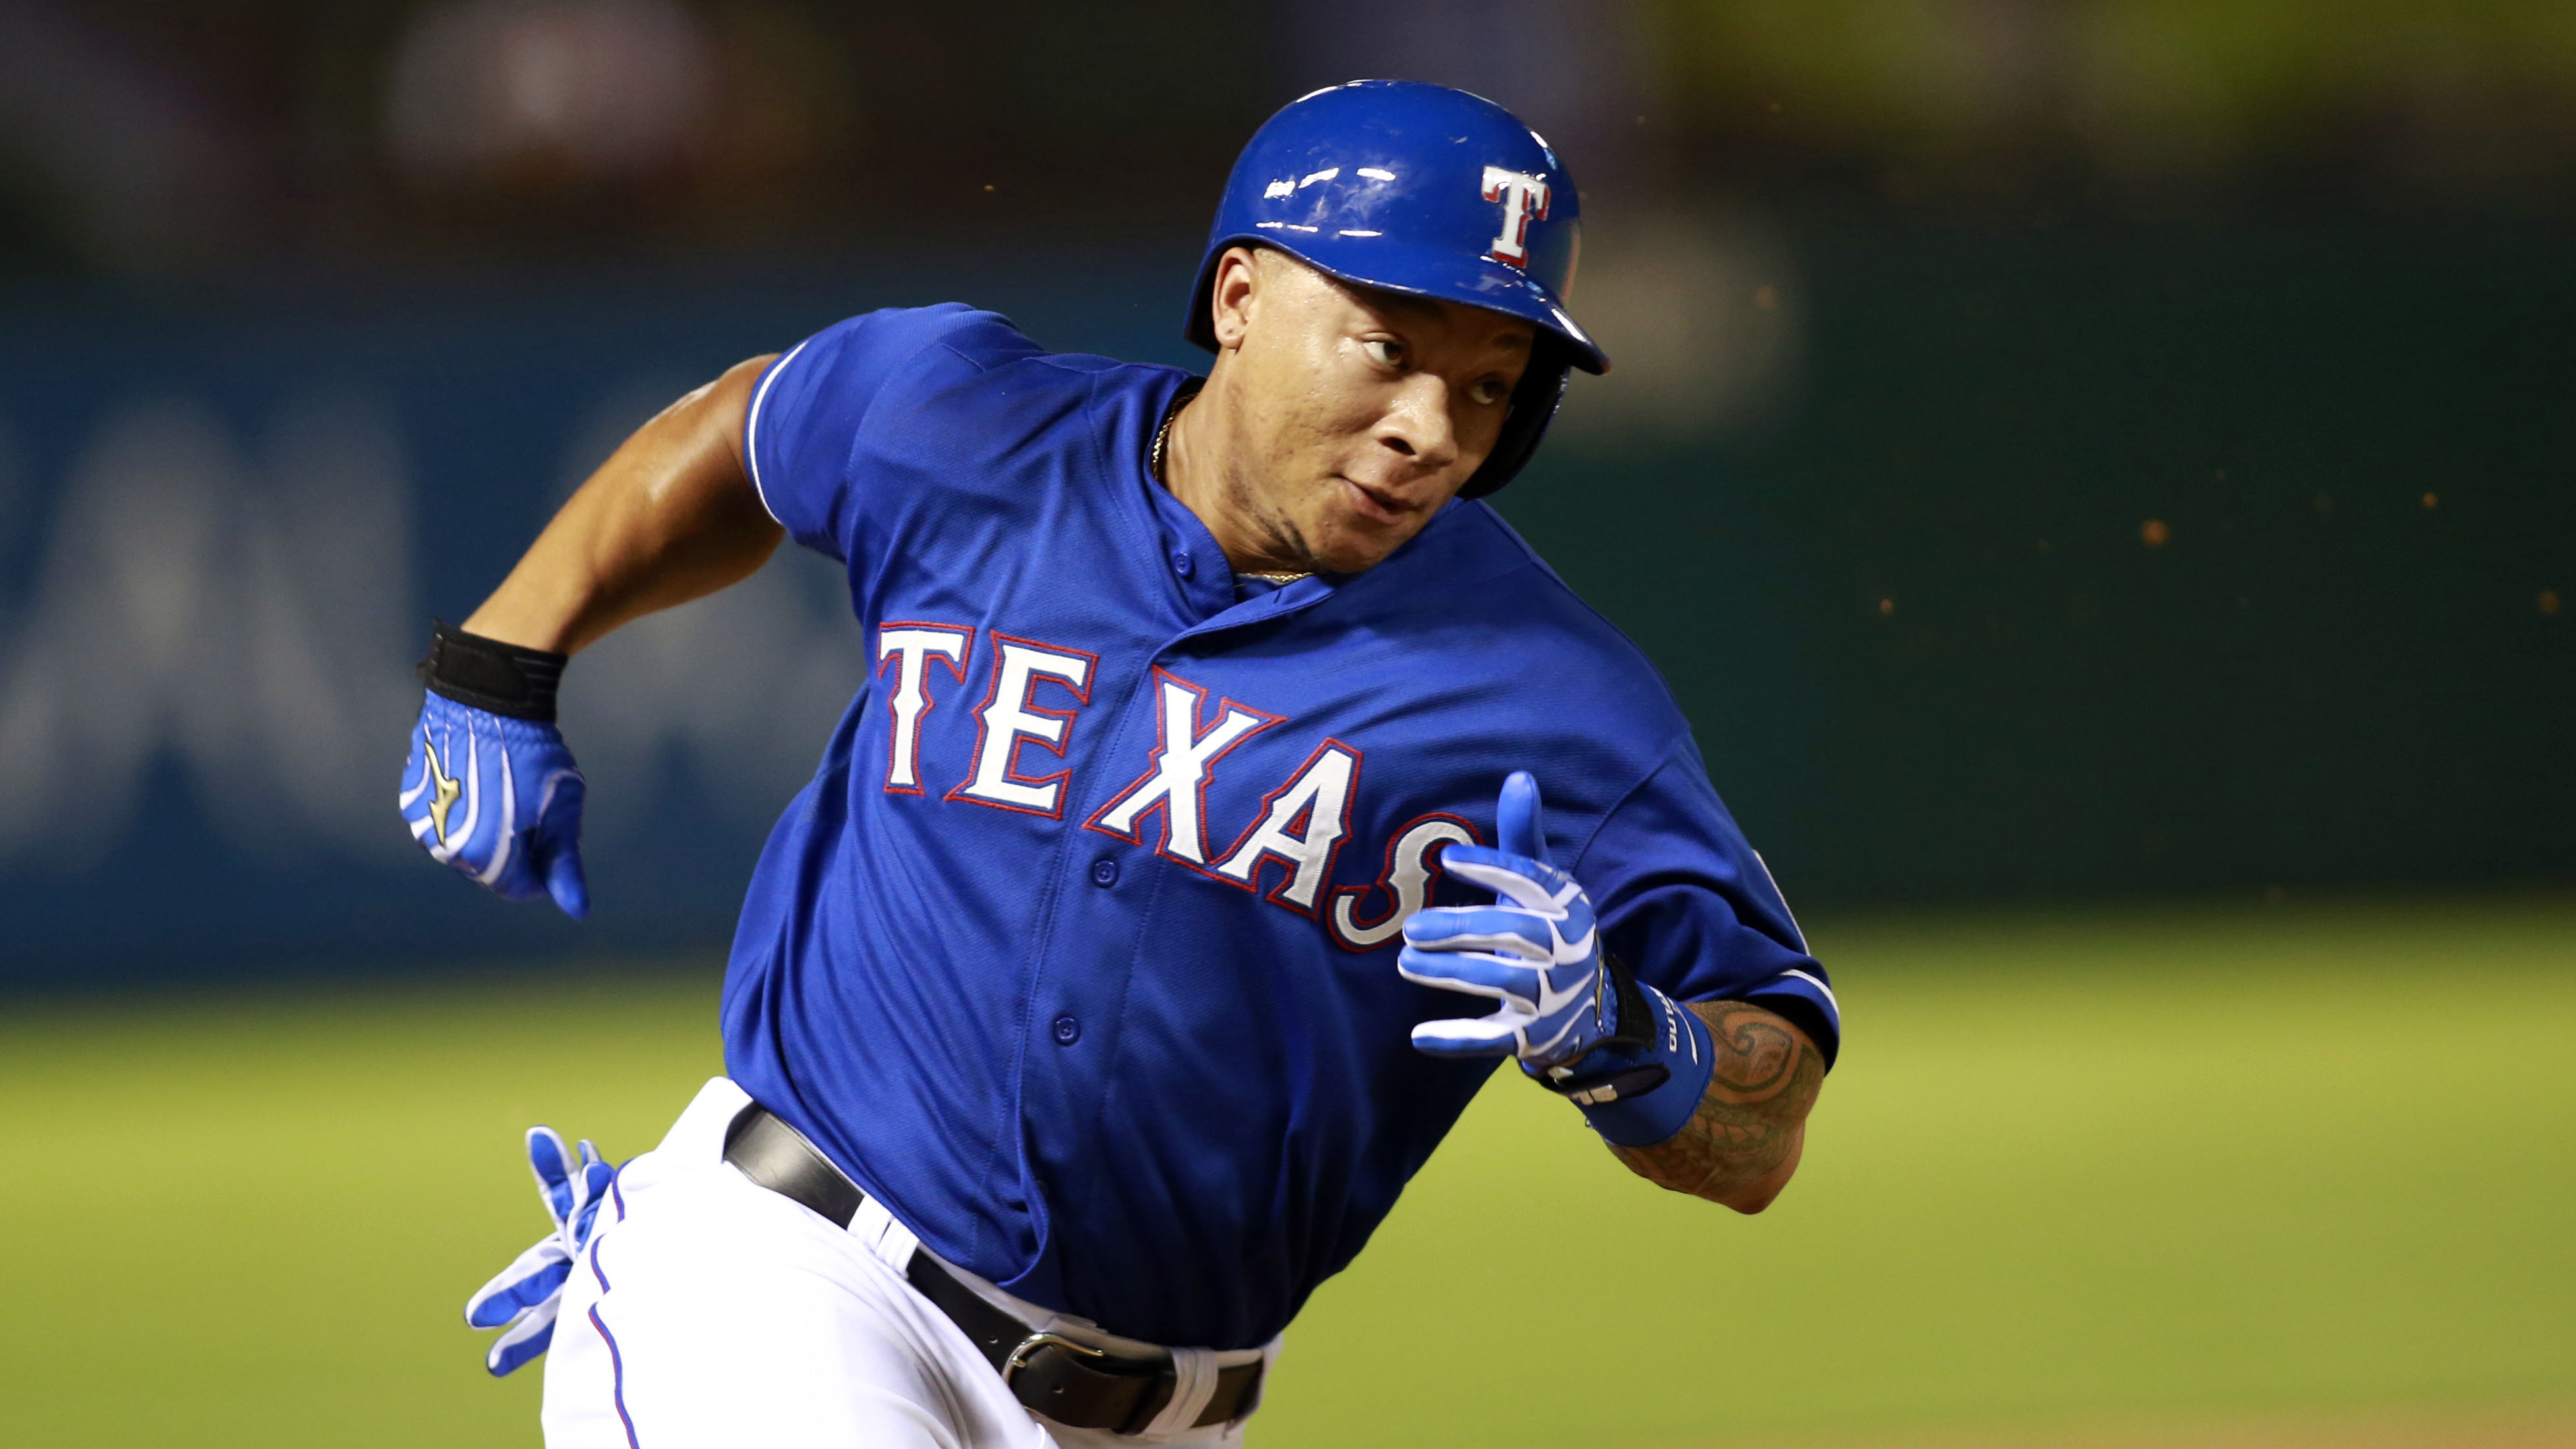 Rangers bring up Choice for bench bat